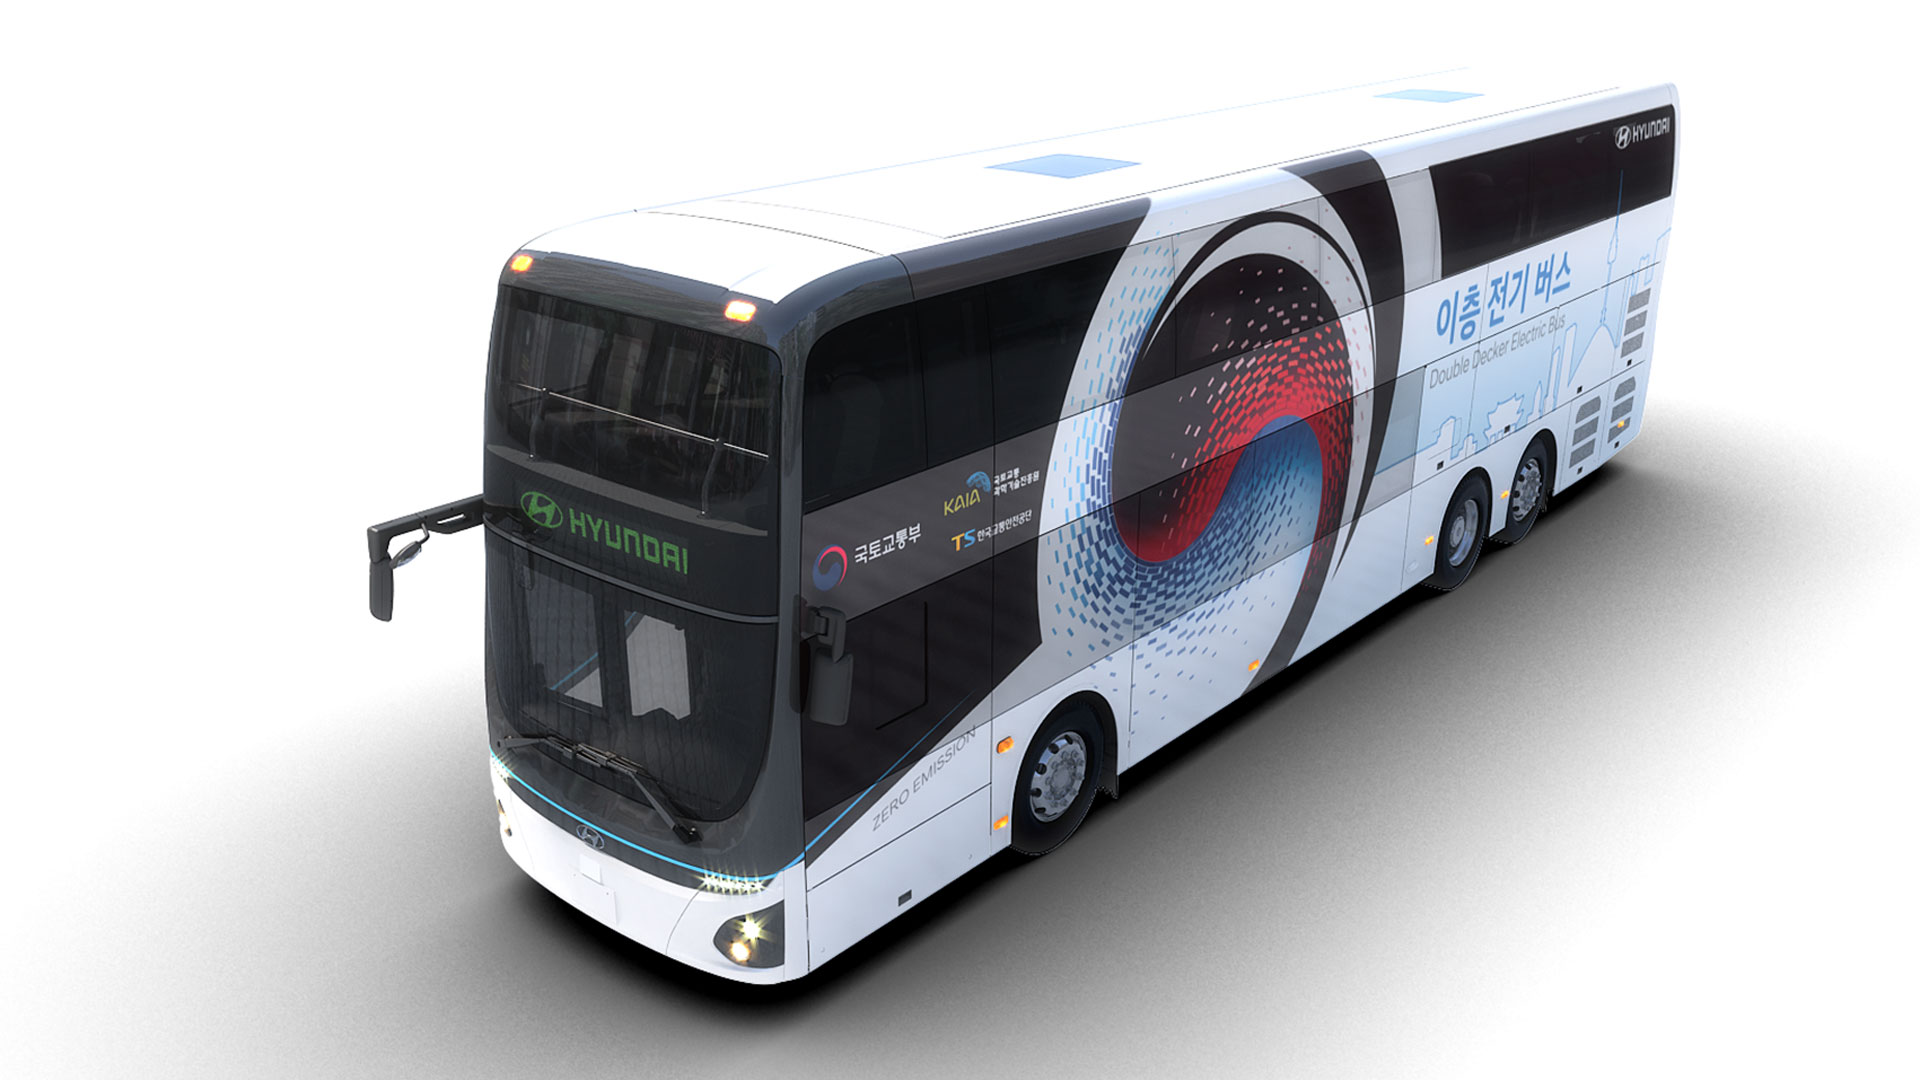 Hyundai electric double-decker bus